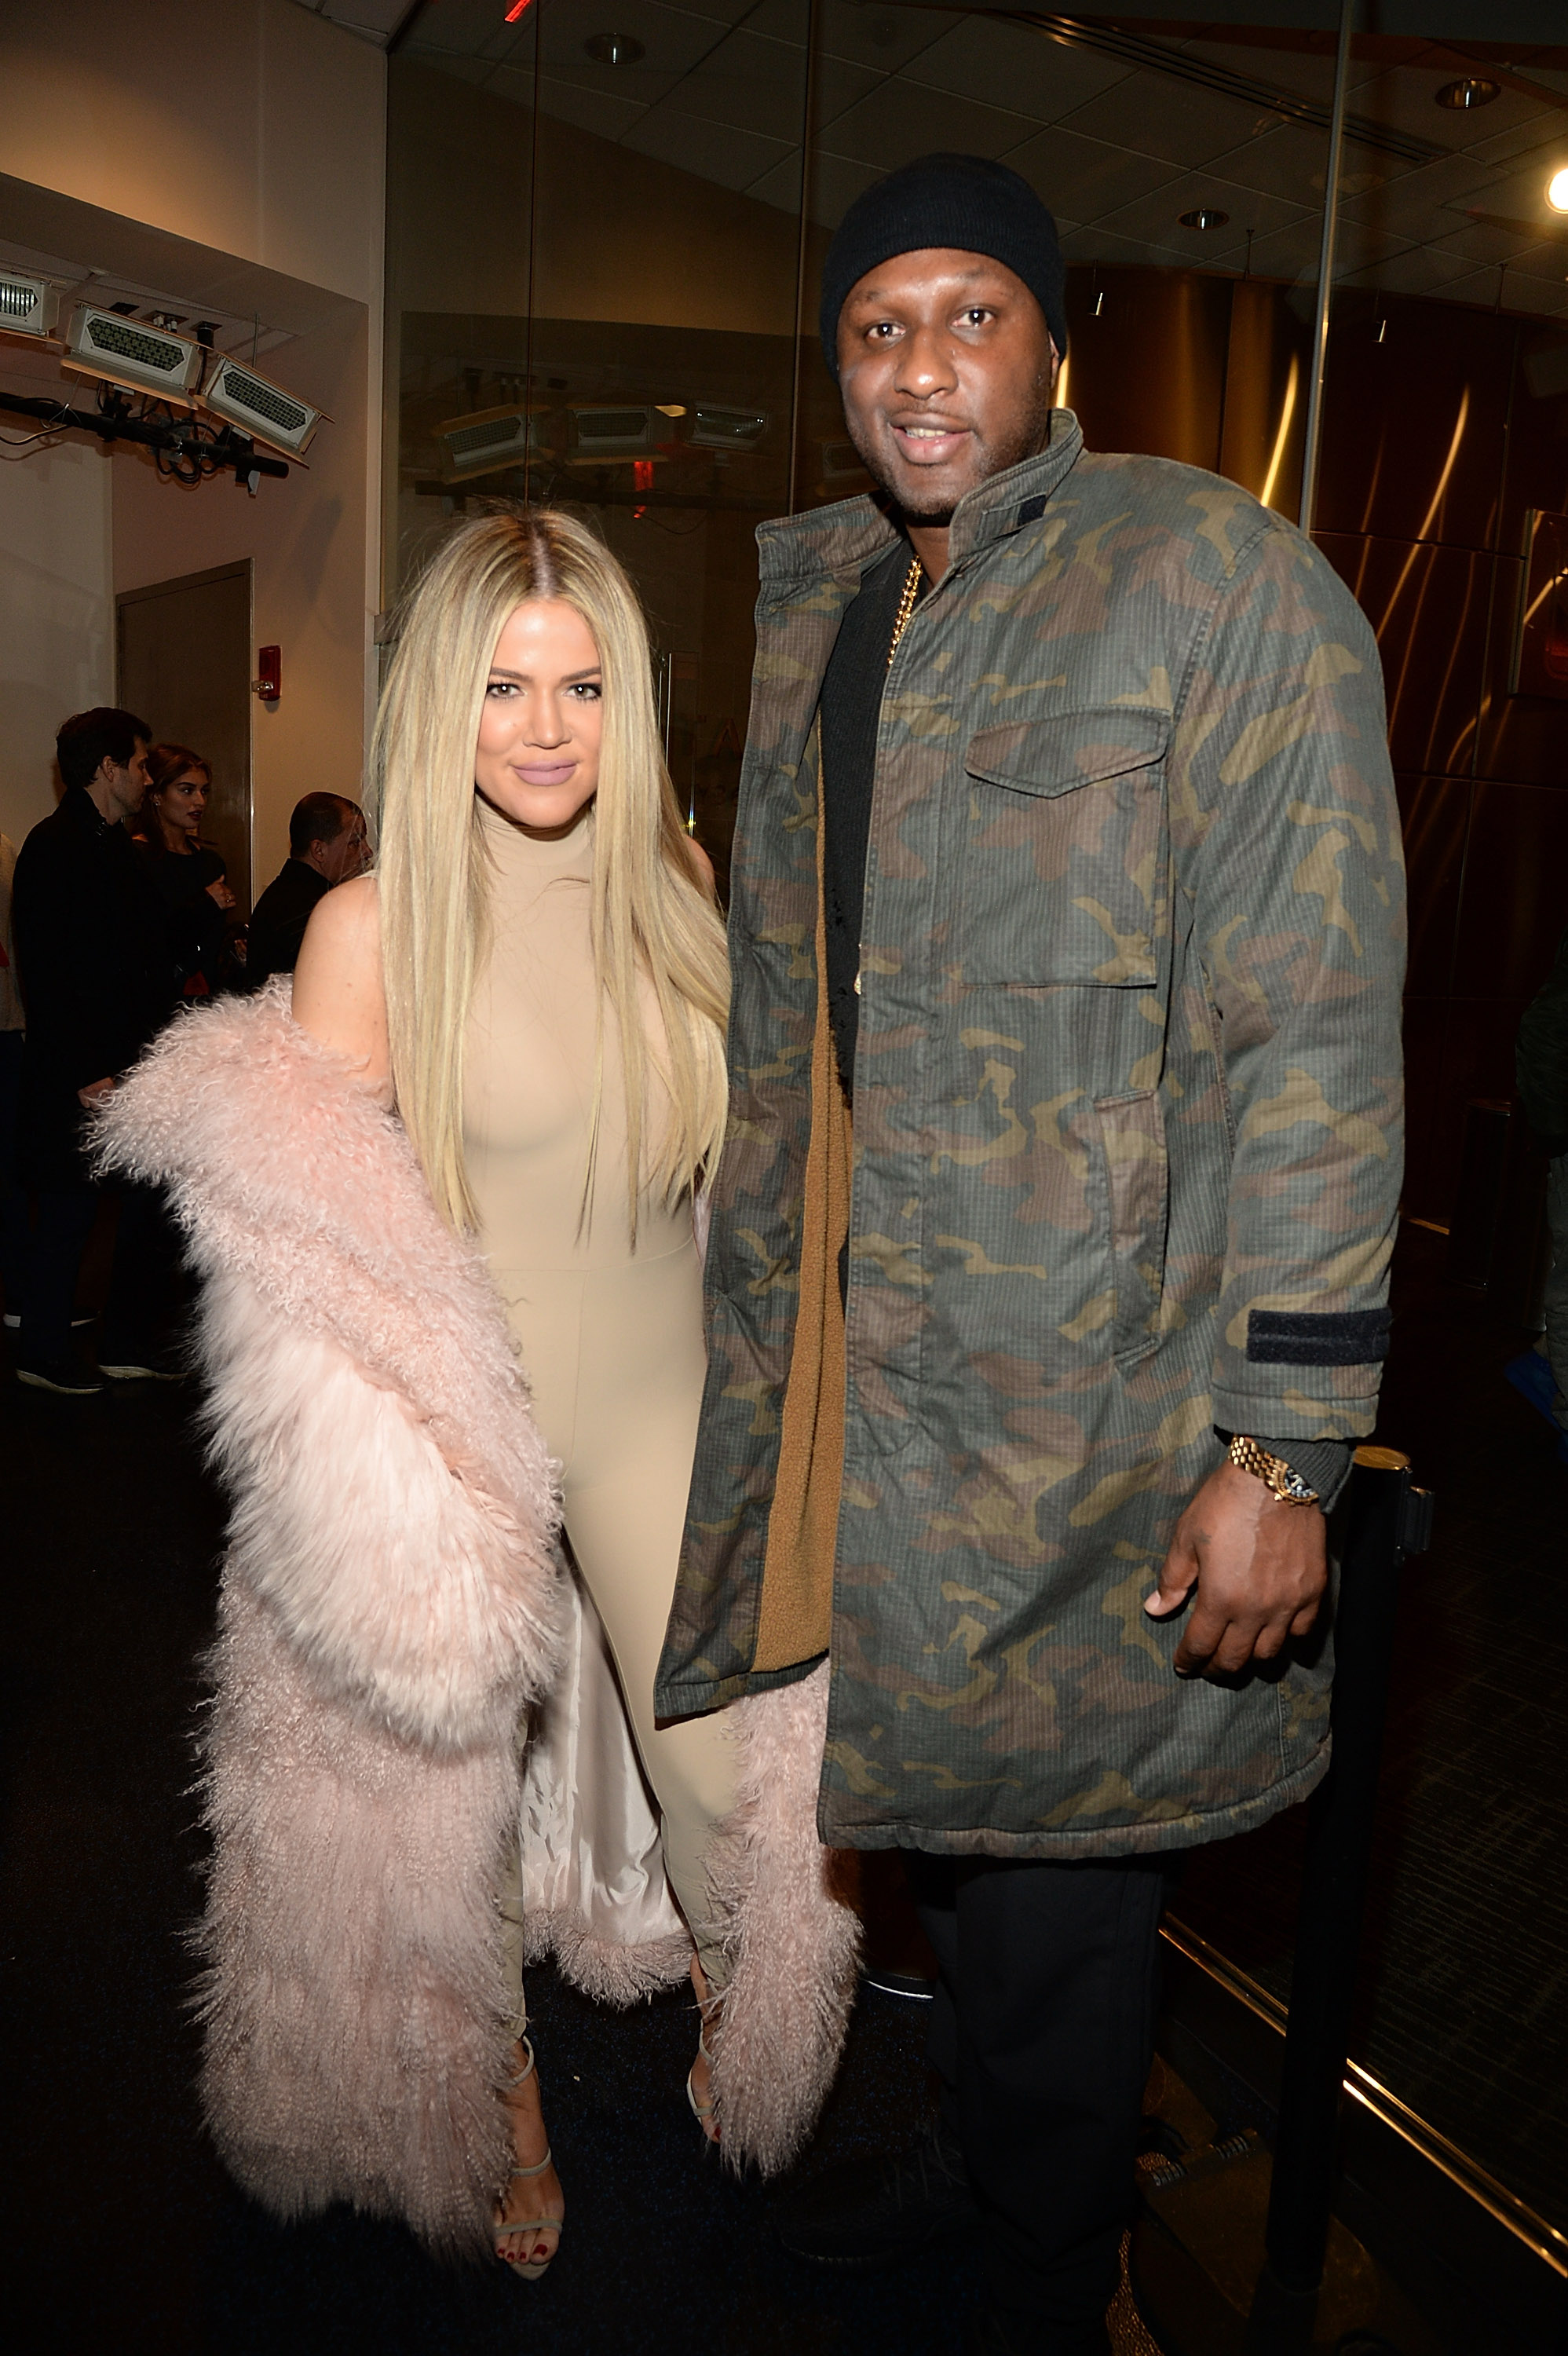 Why Khloe Kardashian filed for divorce again from Lamar Odom